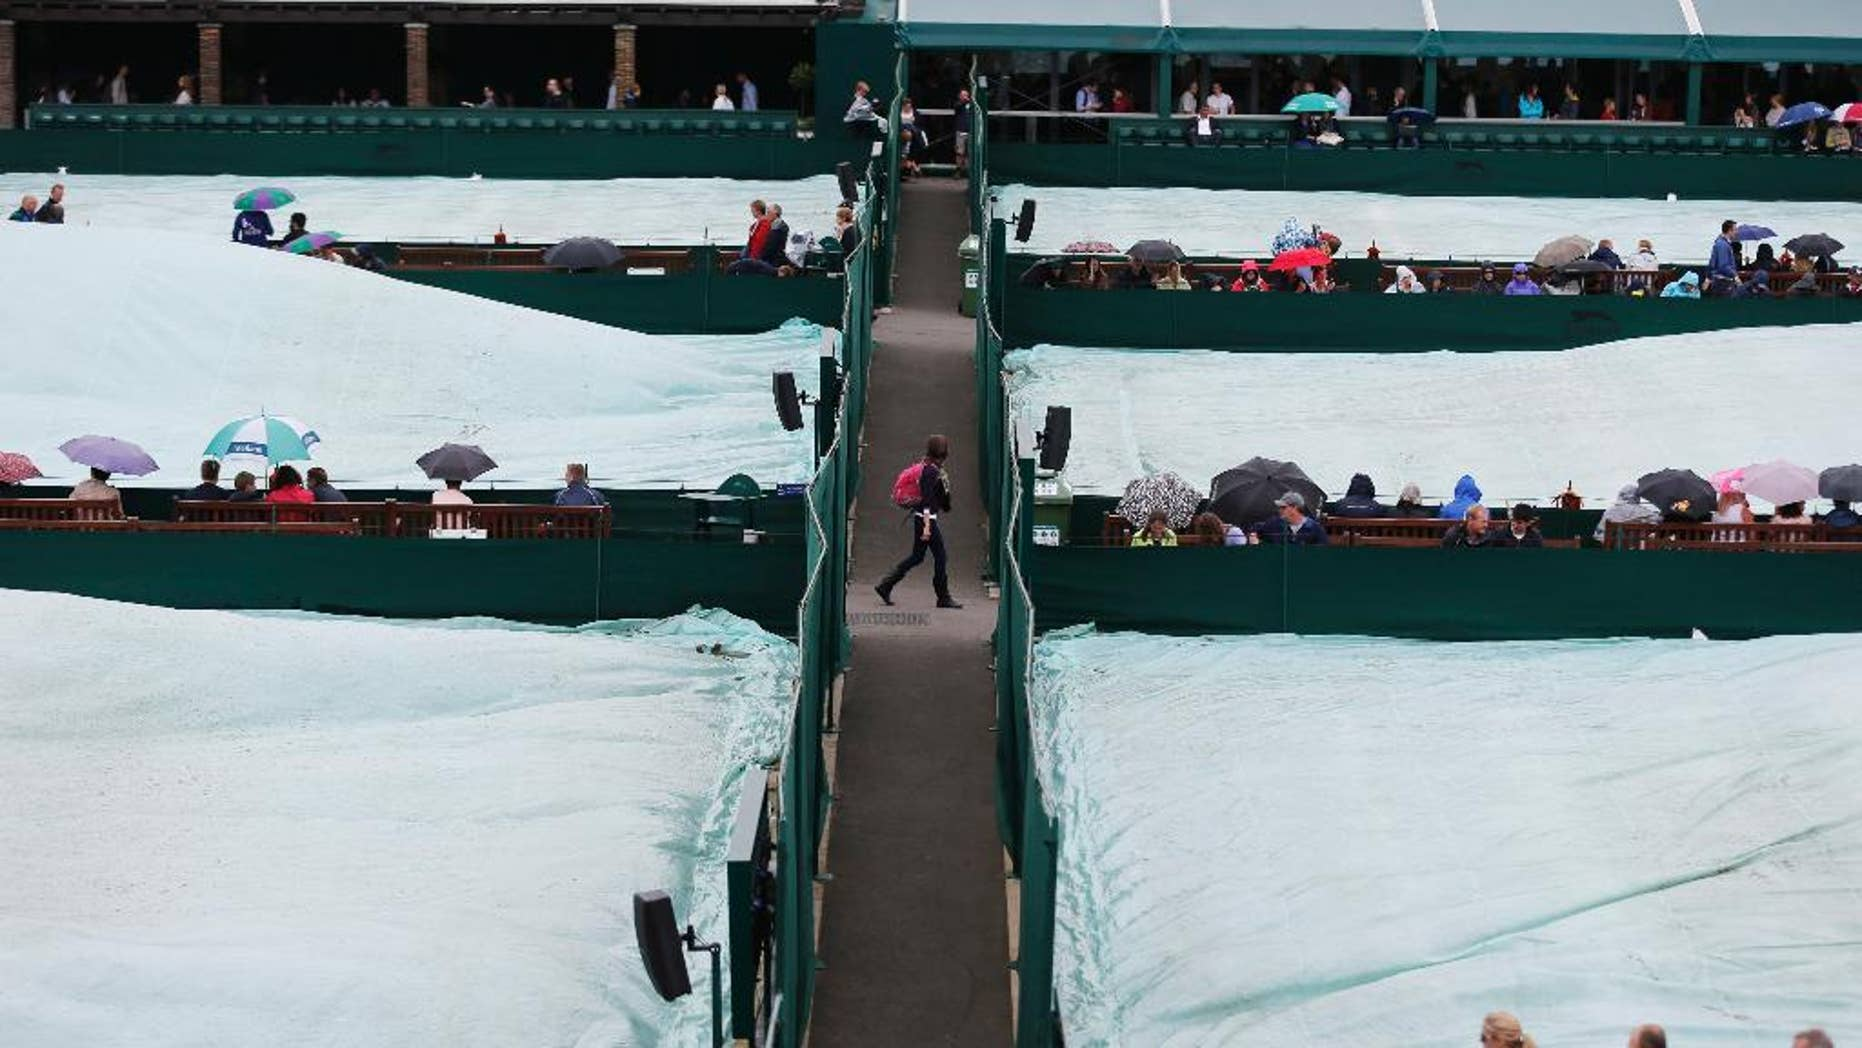 Courts are covered as rain delays the start of matches at the All England Lawn Tennis Championships in Wimbledon, London, Friday, June 27, 2014. (AP Photo/Ben Curtis)